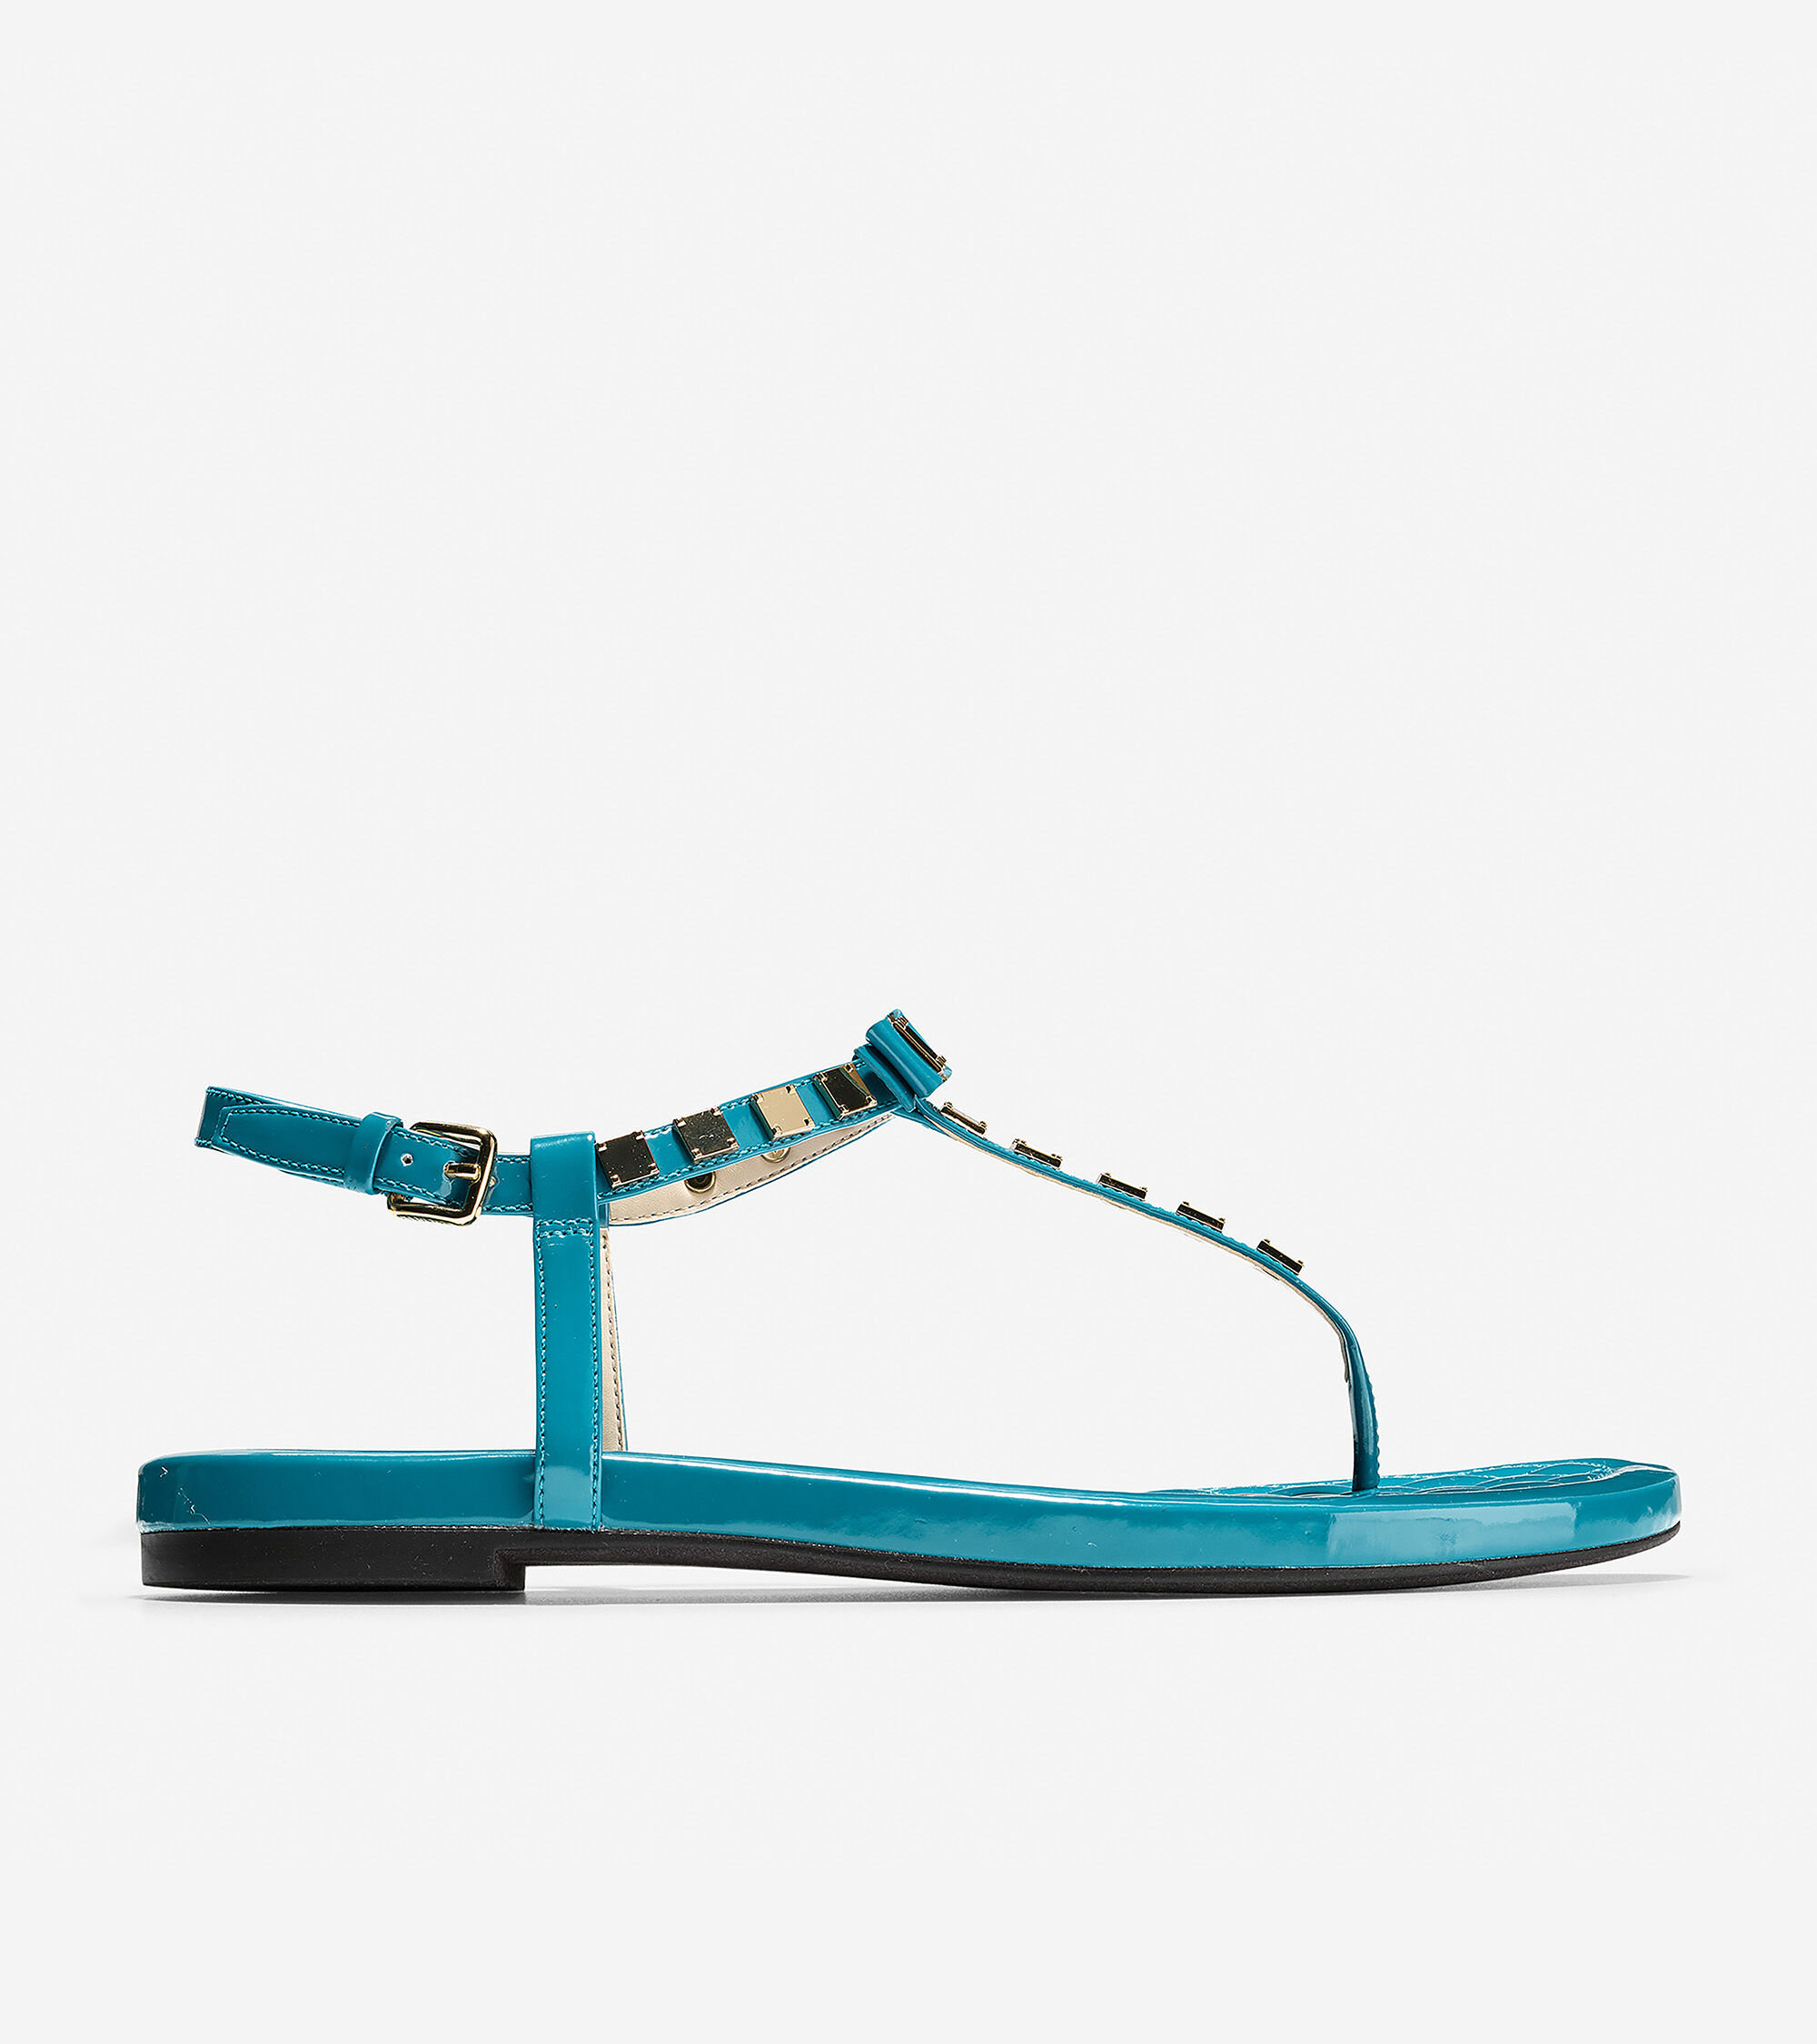 Cole Haan Tali Mini Bow Studded Thong Sandal(Women's) -Black Synthetic Patent Buy Cheap Great Deals Cheap Sale Exclusive Cheap Footlocker Pictures Clearance Pay With Paypal Pick A Best Sale Online aoX3Gk